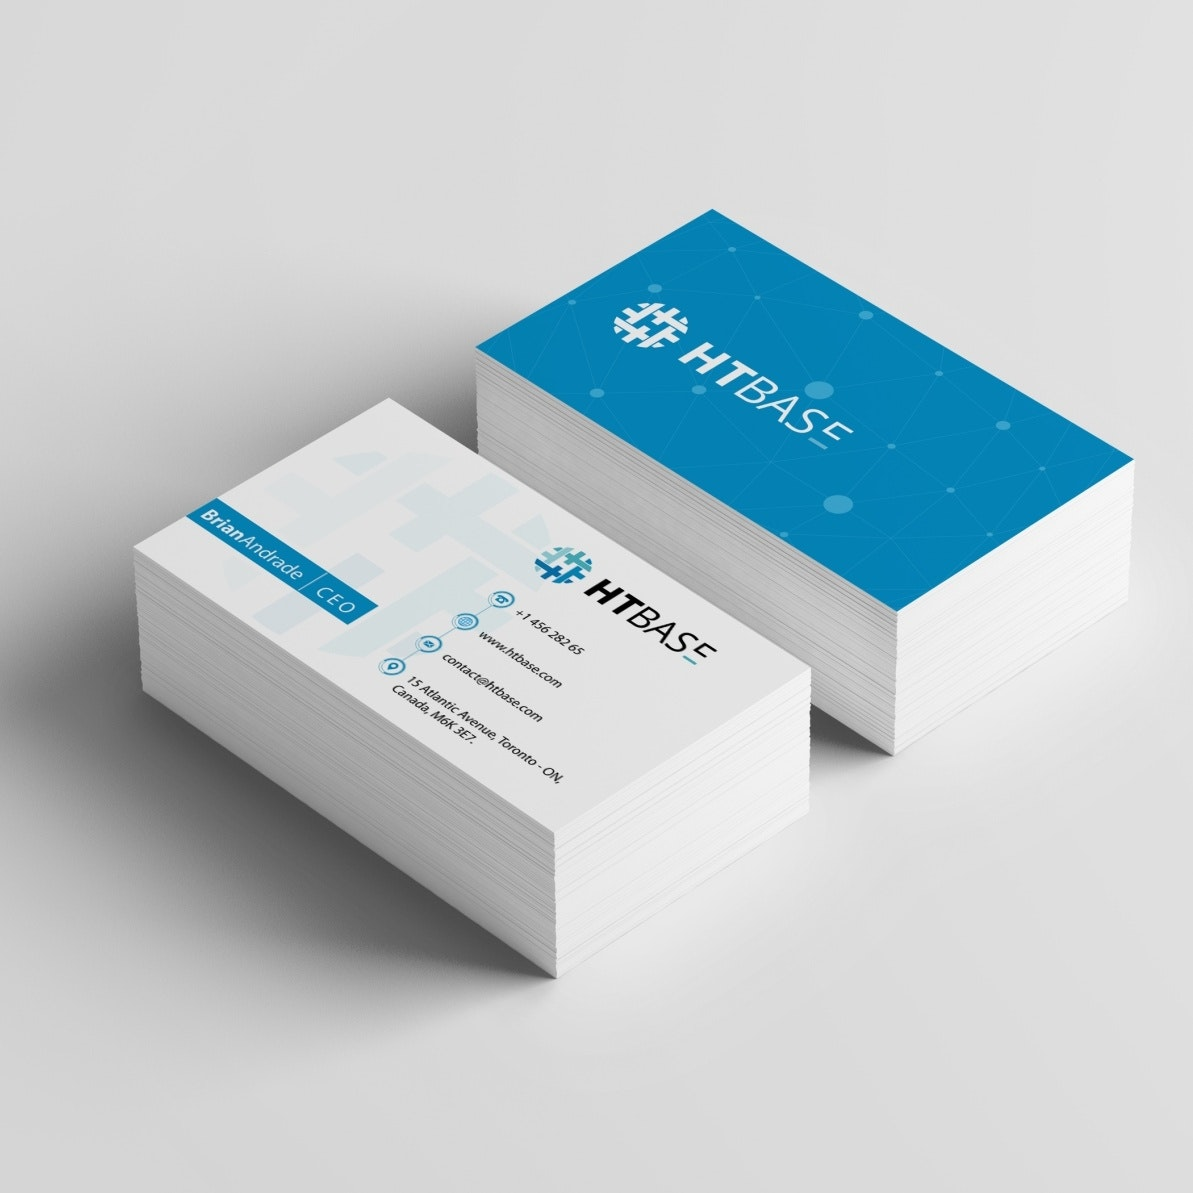 A blue and white business card